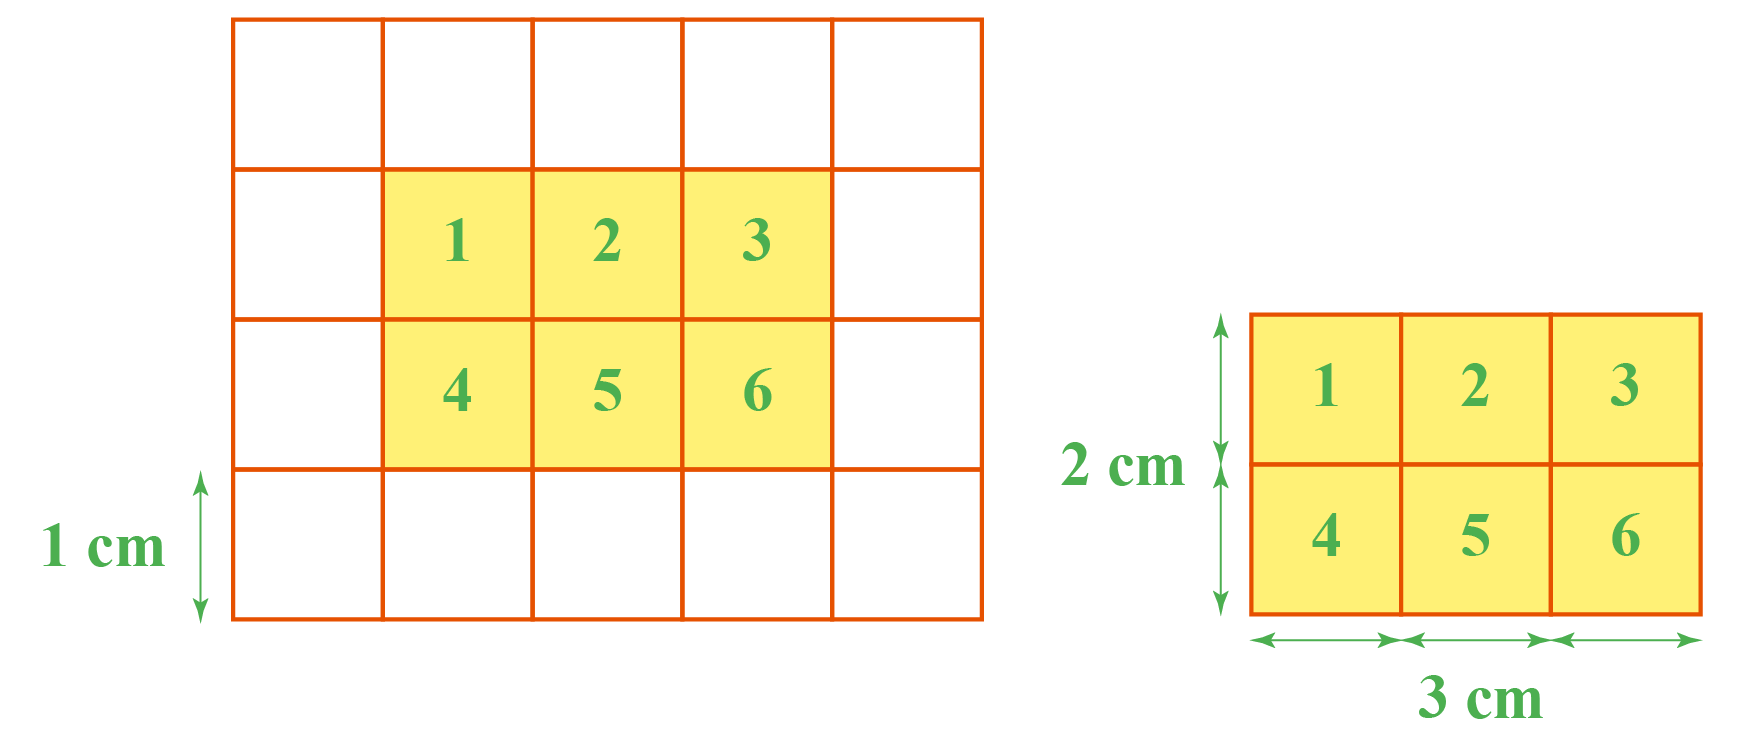 A rectangle shown in a grid. It occupies 6 units. The length is 2 units and breadth is 3 units.